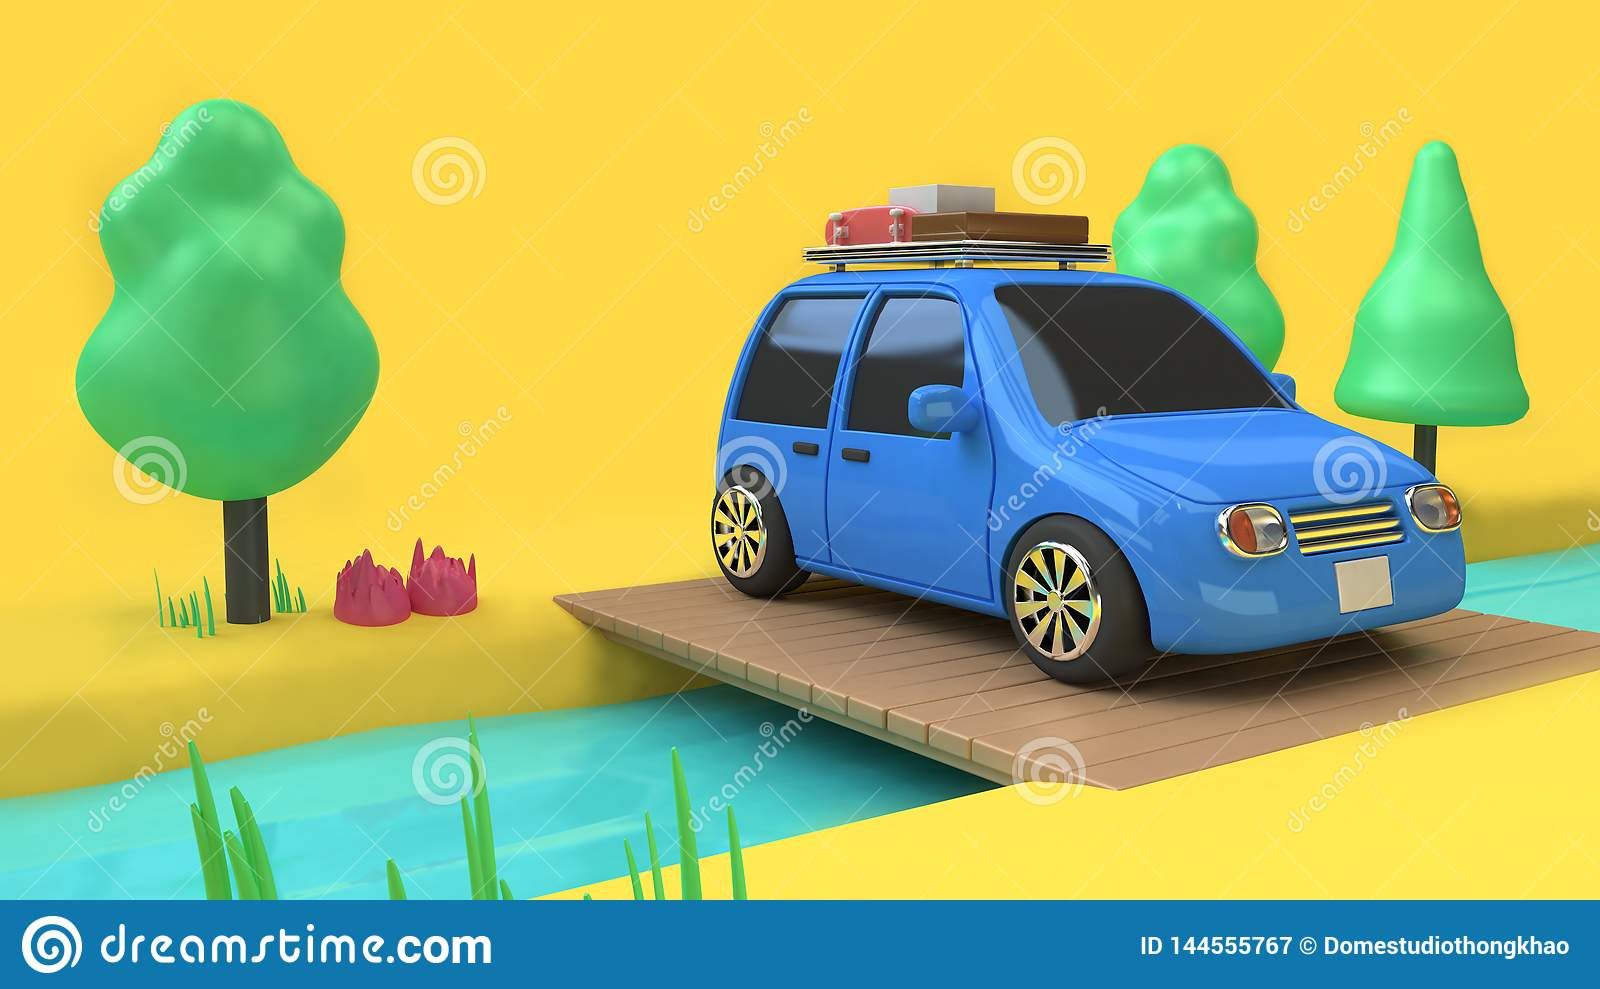 Blue car eco-family car style with object on wood bridge over stream and many tree nature,travel holiday concept 3d rendering c